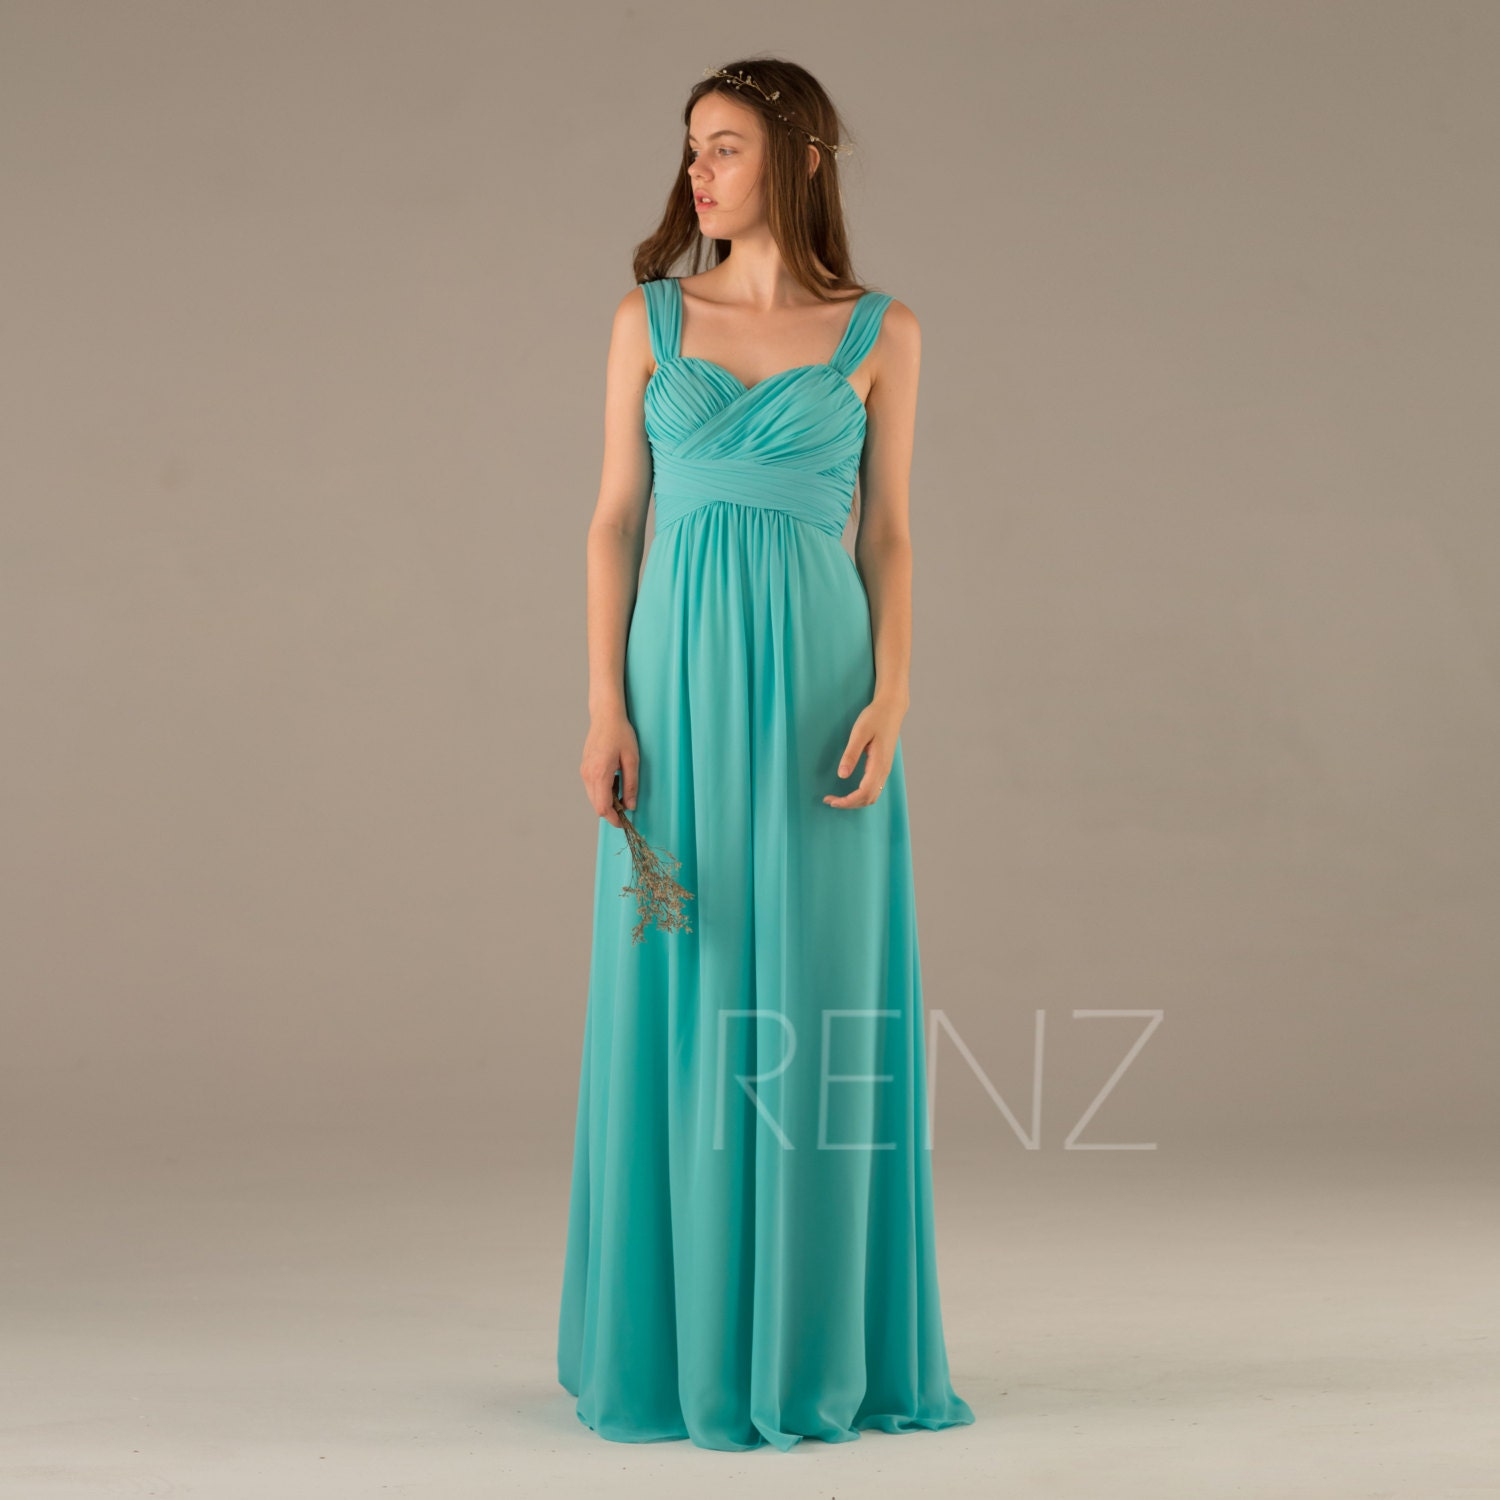 Bridesmaid dress turquoise wedding dresslong criss cross zoom junglespirit Image collections